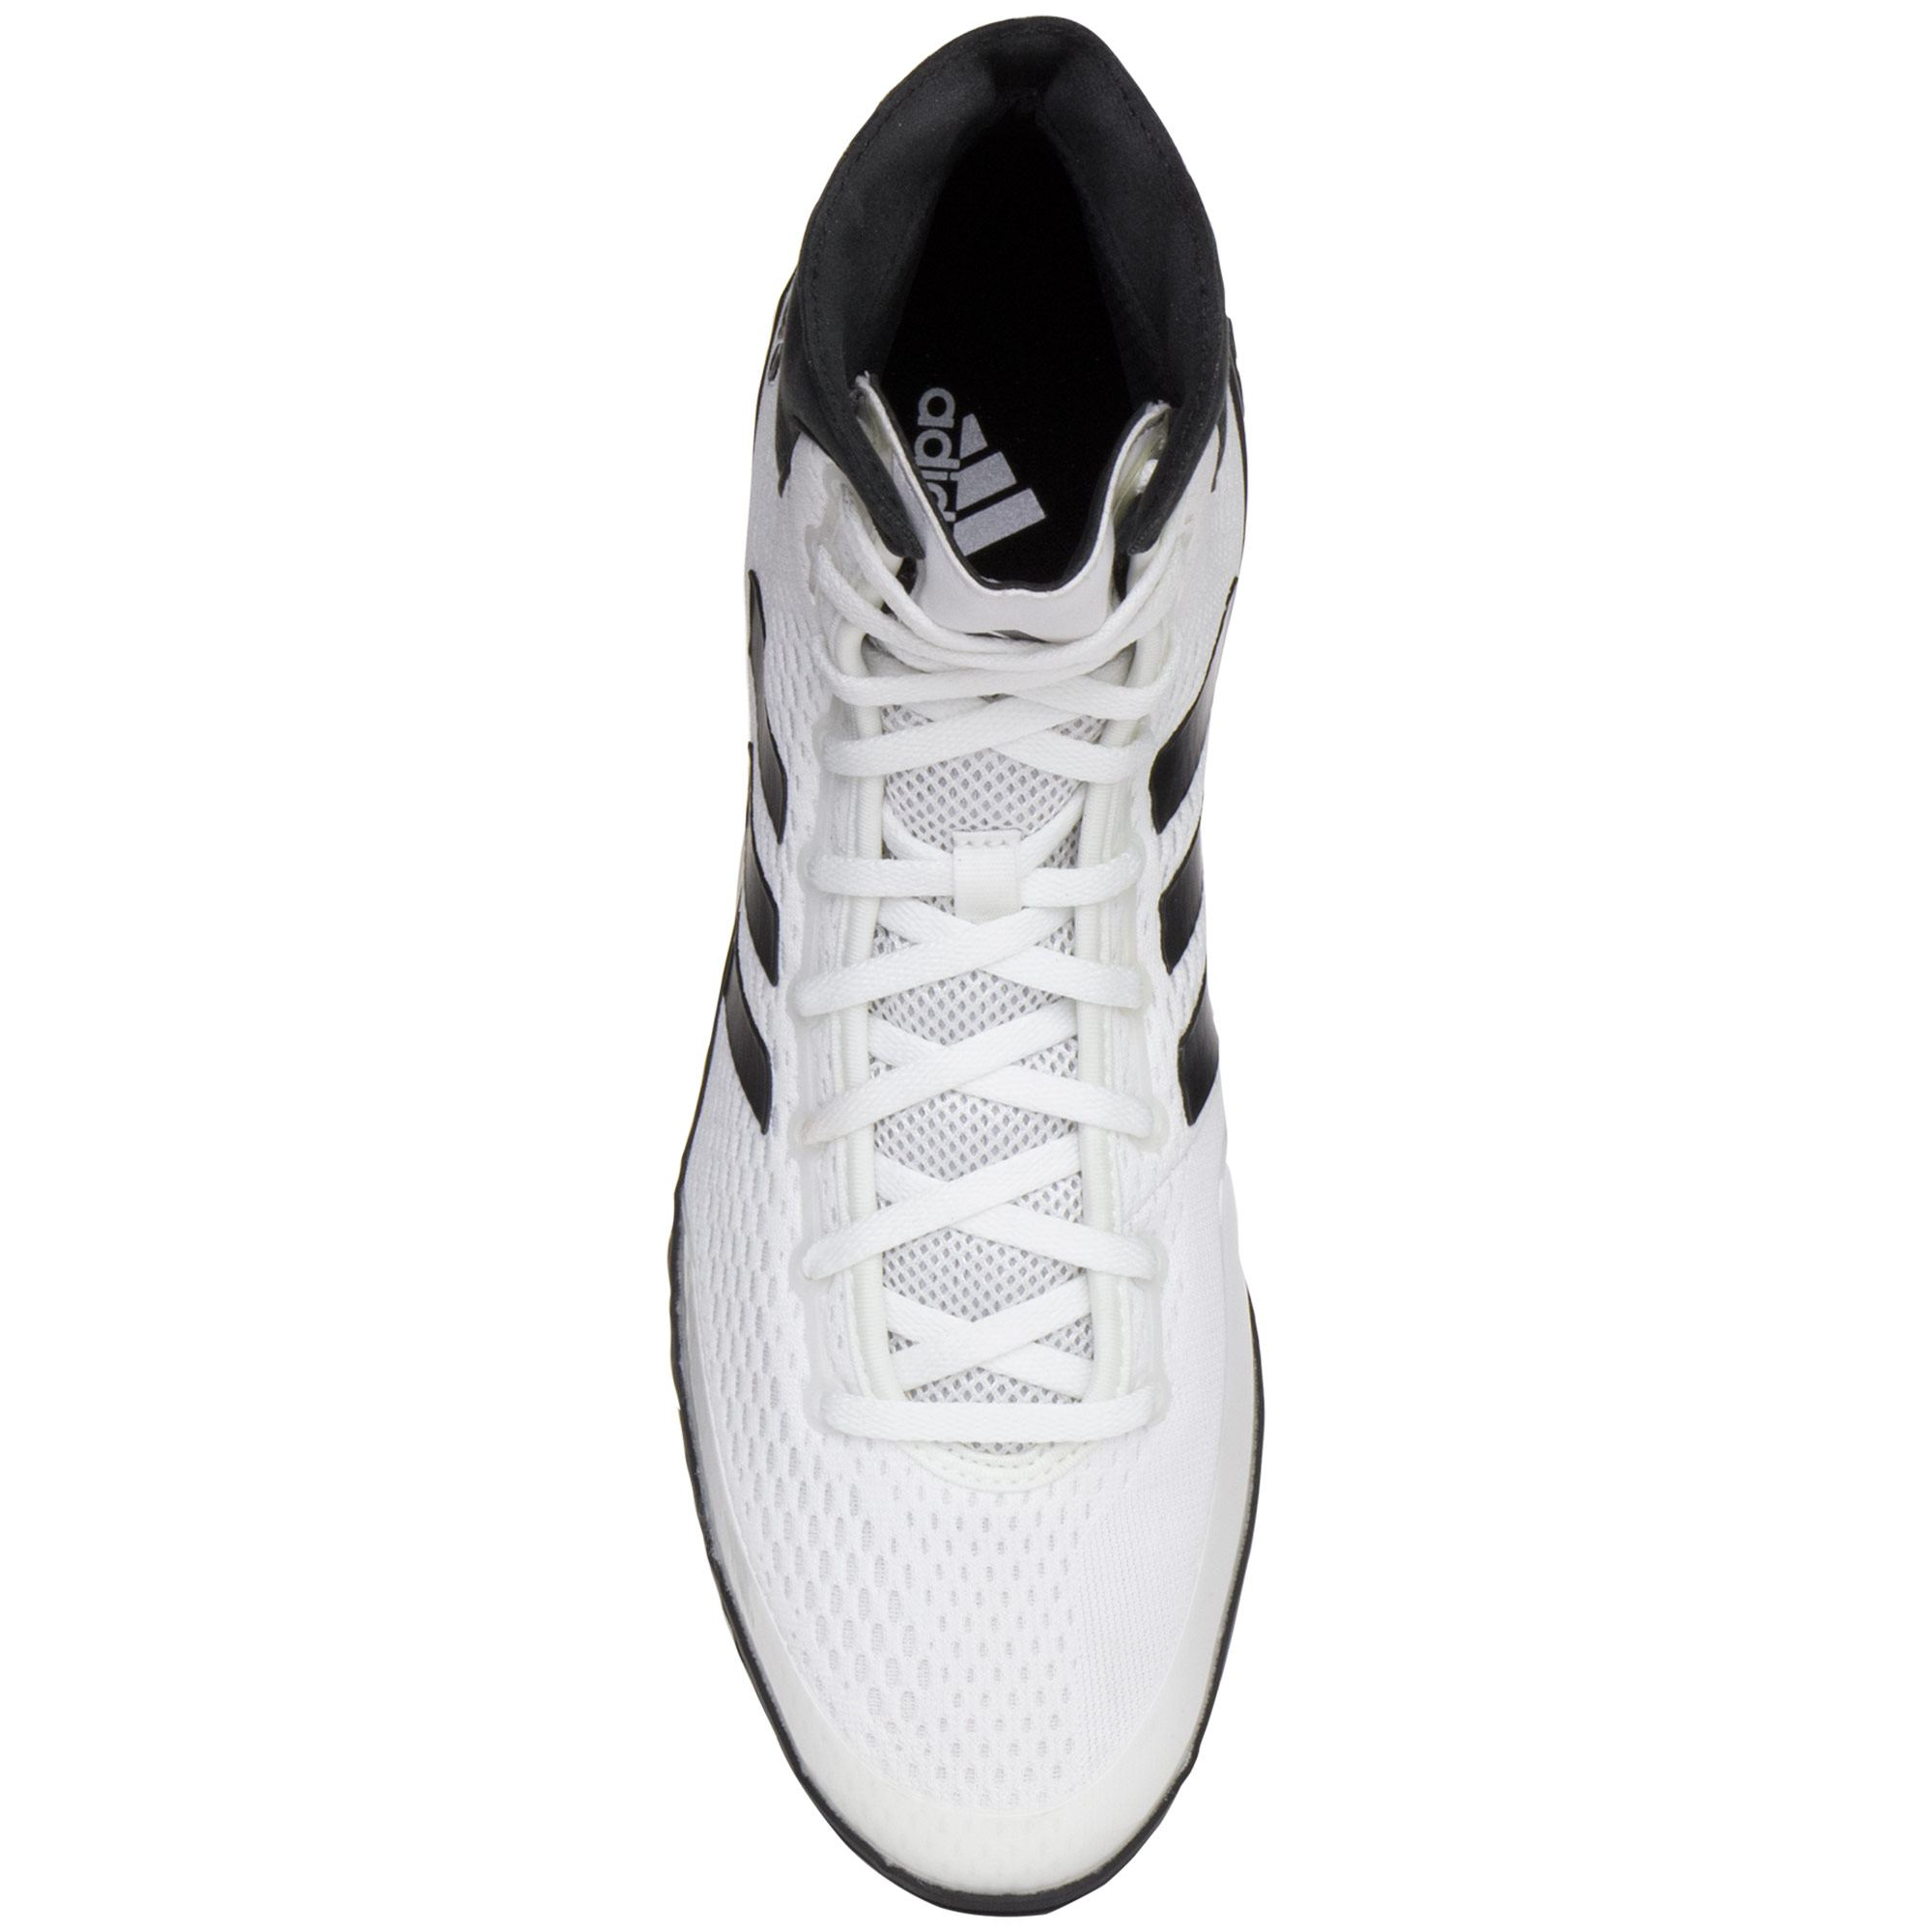 Adidas This Ask About Tech A Fall Question Us Product UzMSLqpGV